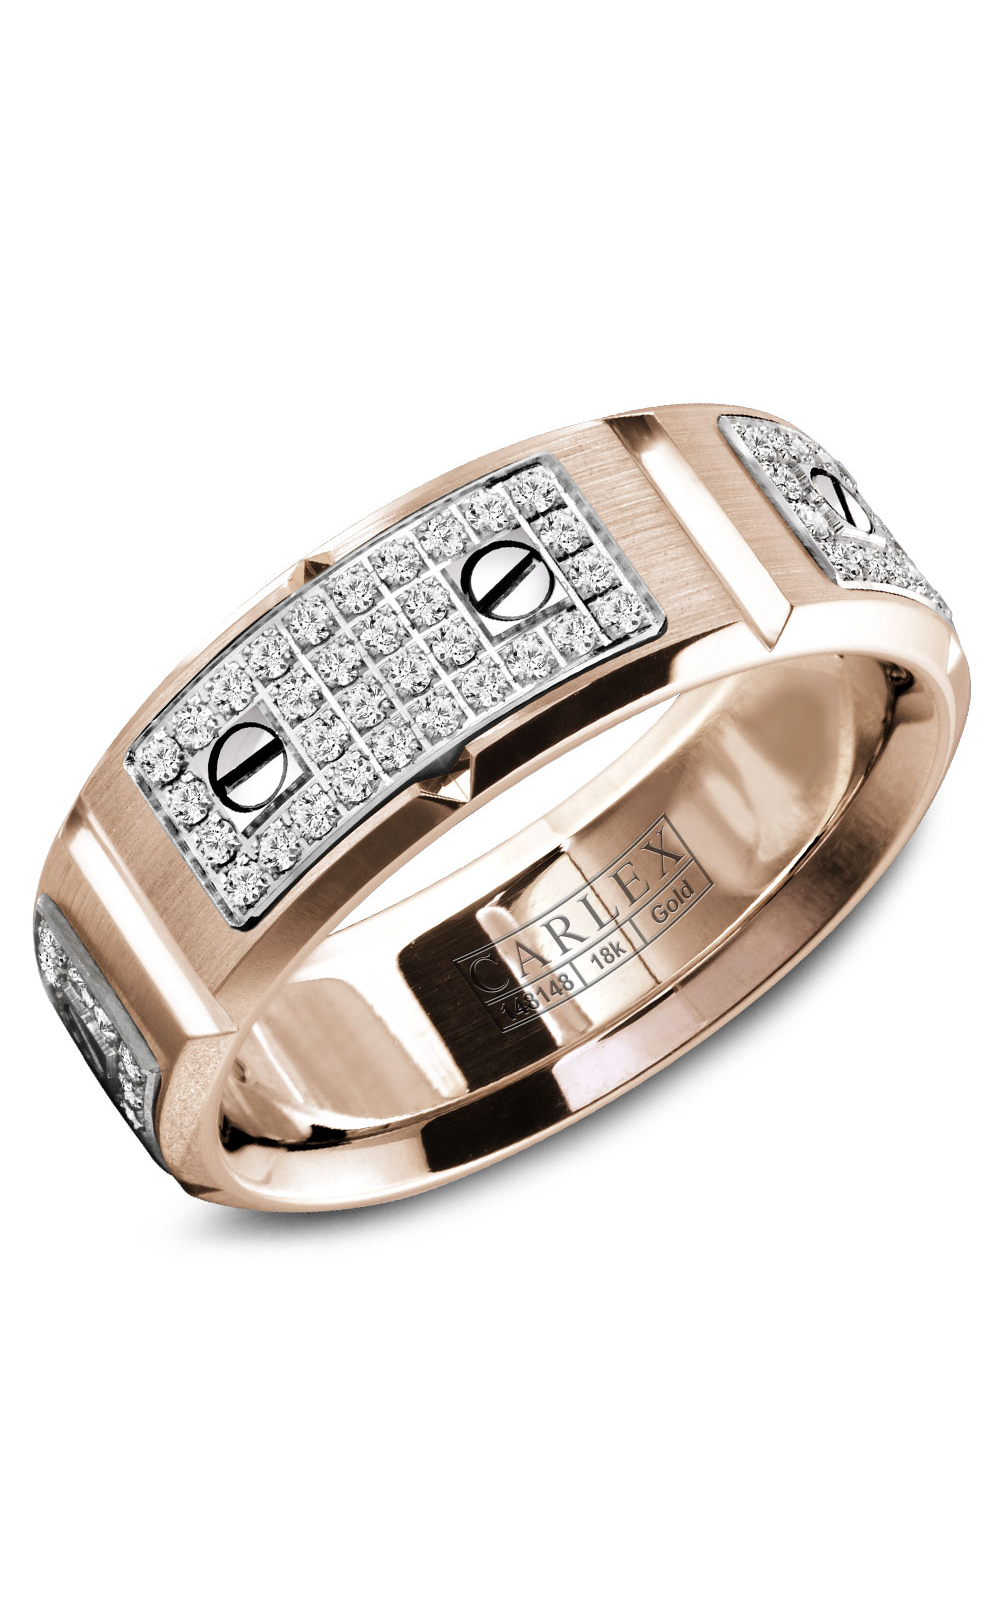 Carlex G2 Men's Wedding Band WB-9585WR product image